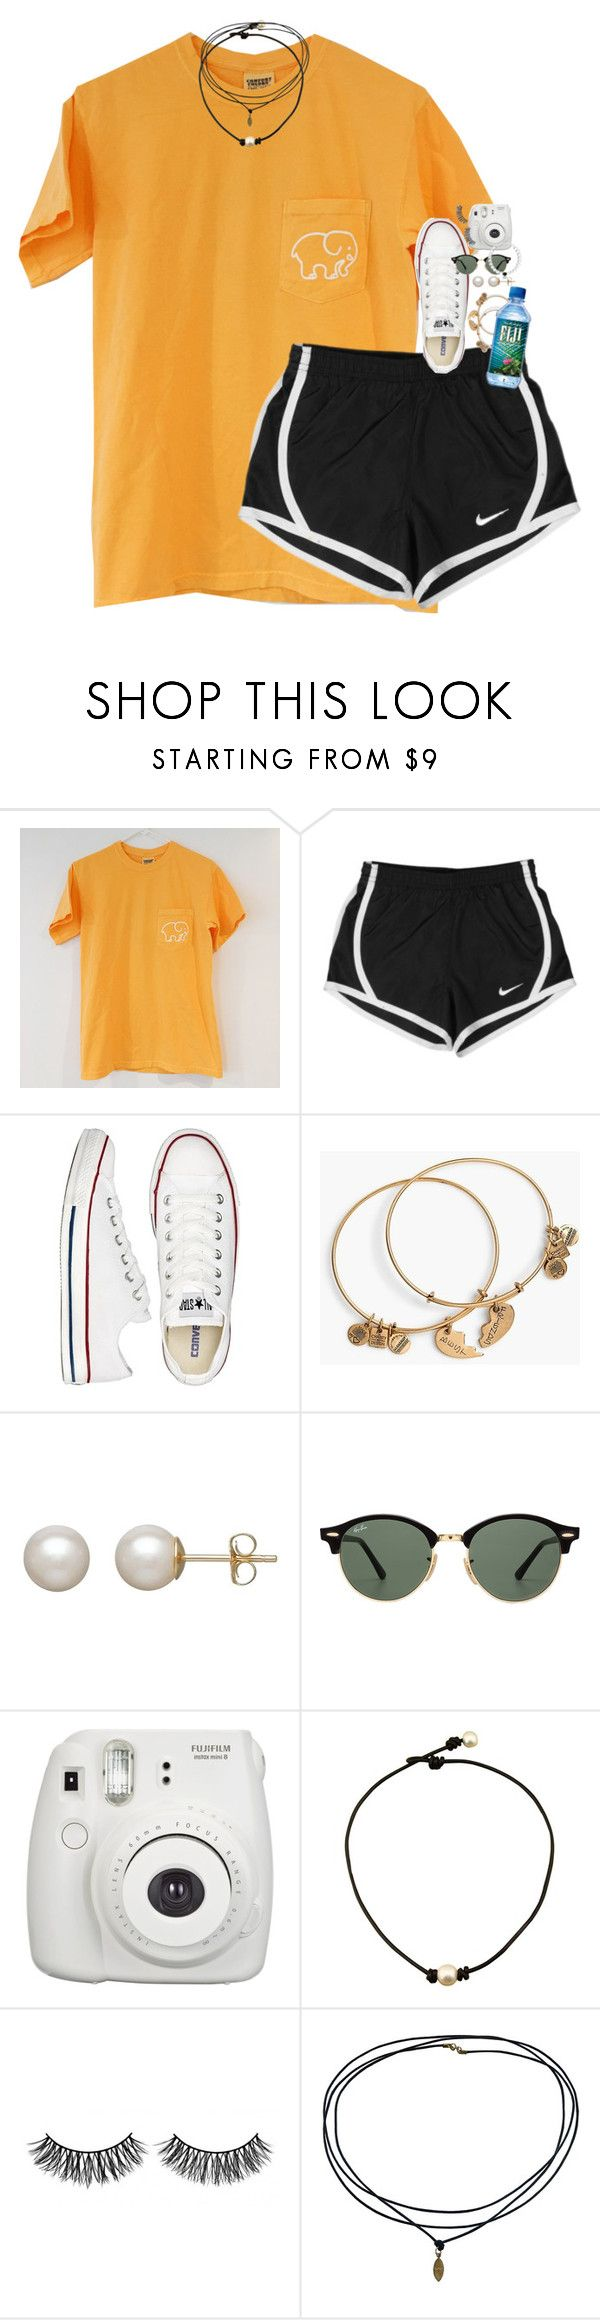 Customized Set!!1111!!!  by classynsouthern ❤ liked on Polyvore featuring NIKE, Converse, Alex and Ani, Honora, RayBan, Fujifilm and Rimini is part of Cute outfits -